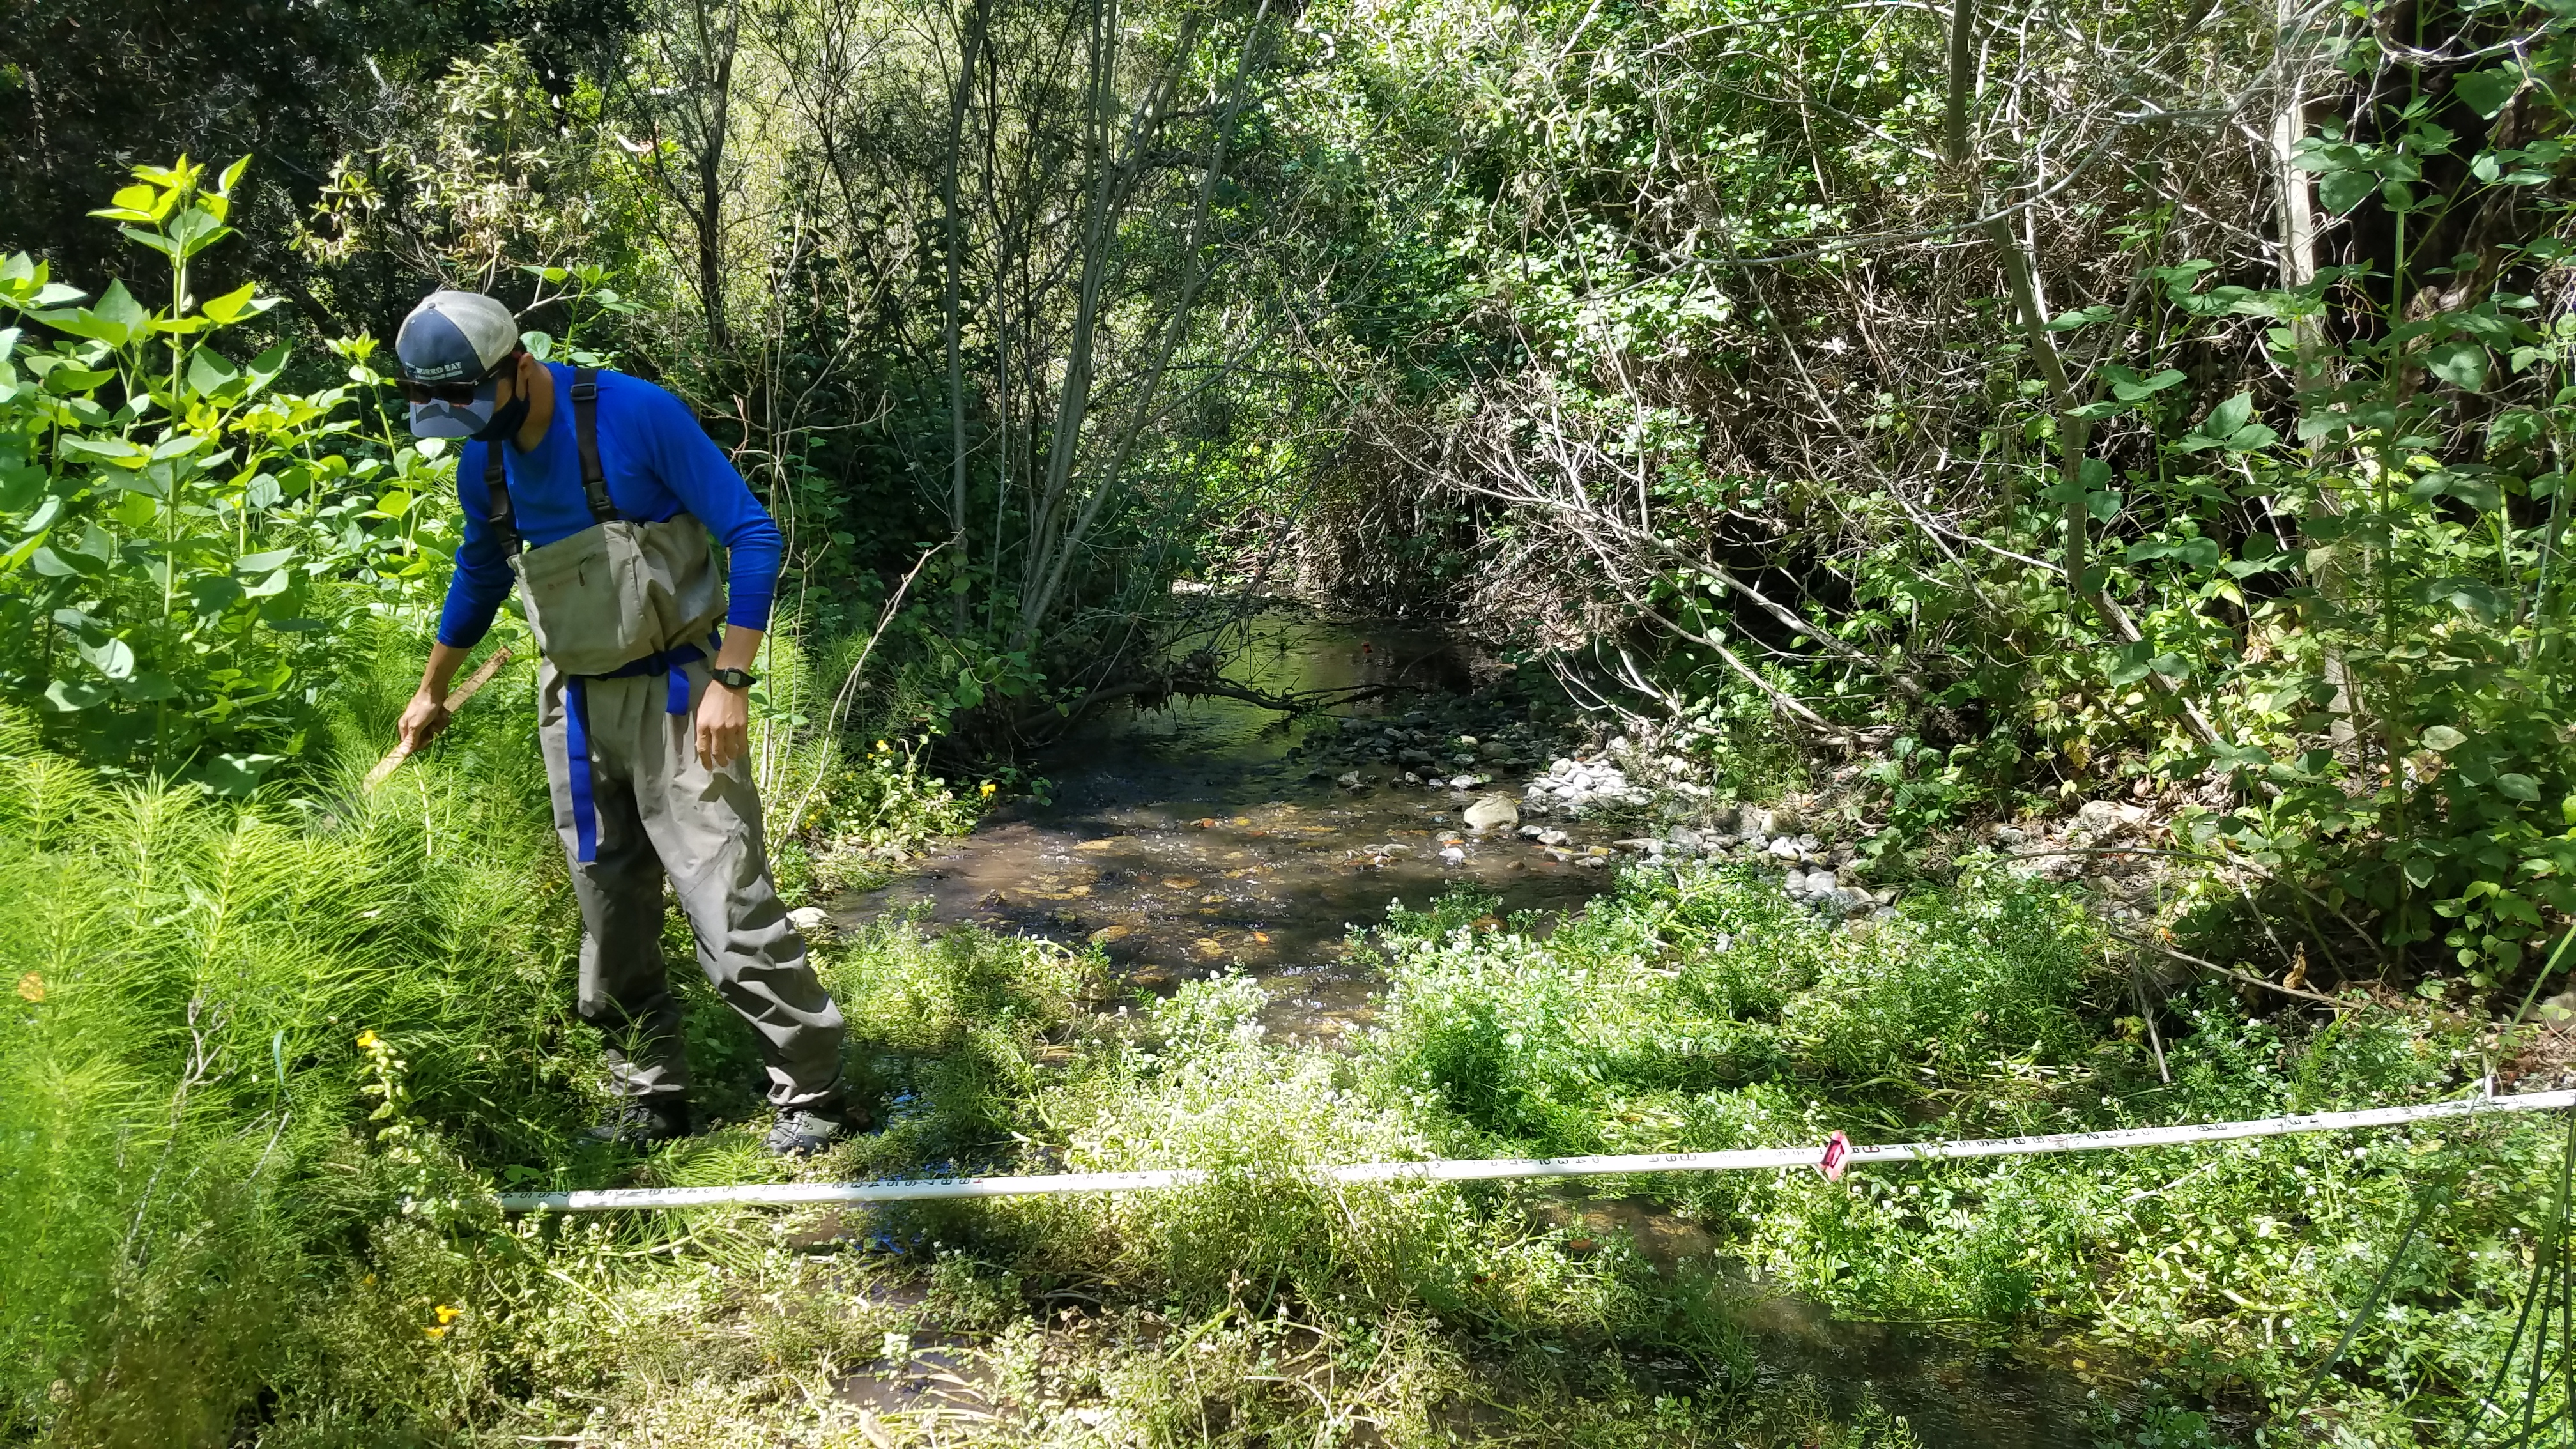 Our former field technician, Blake, measures the wetted width of a stream.